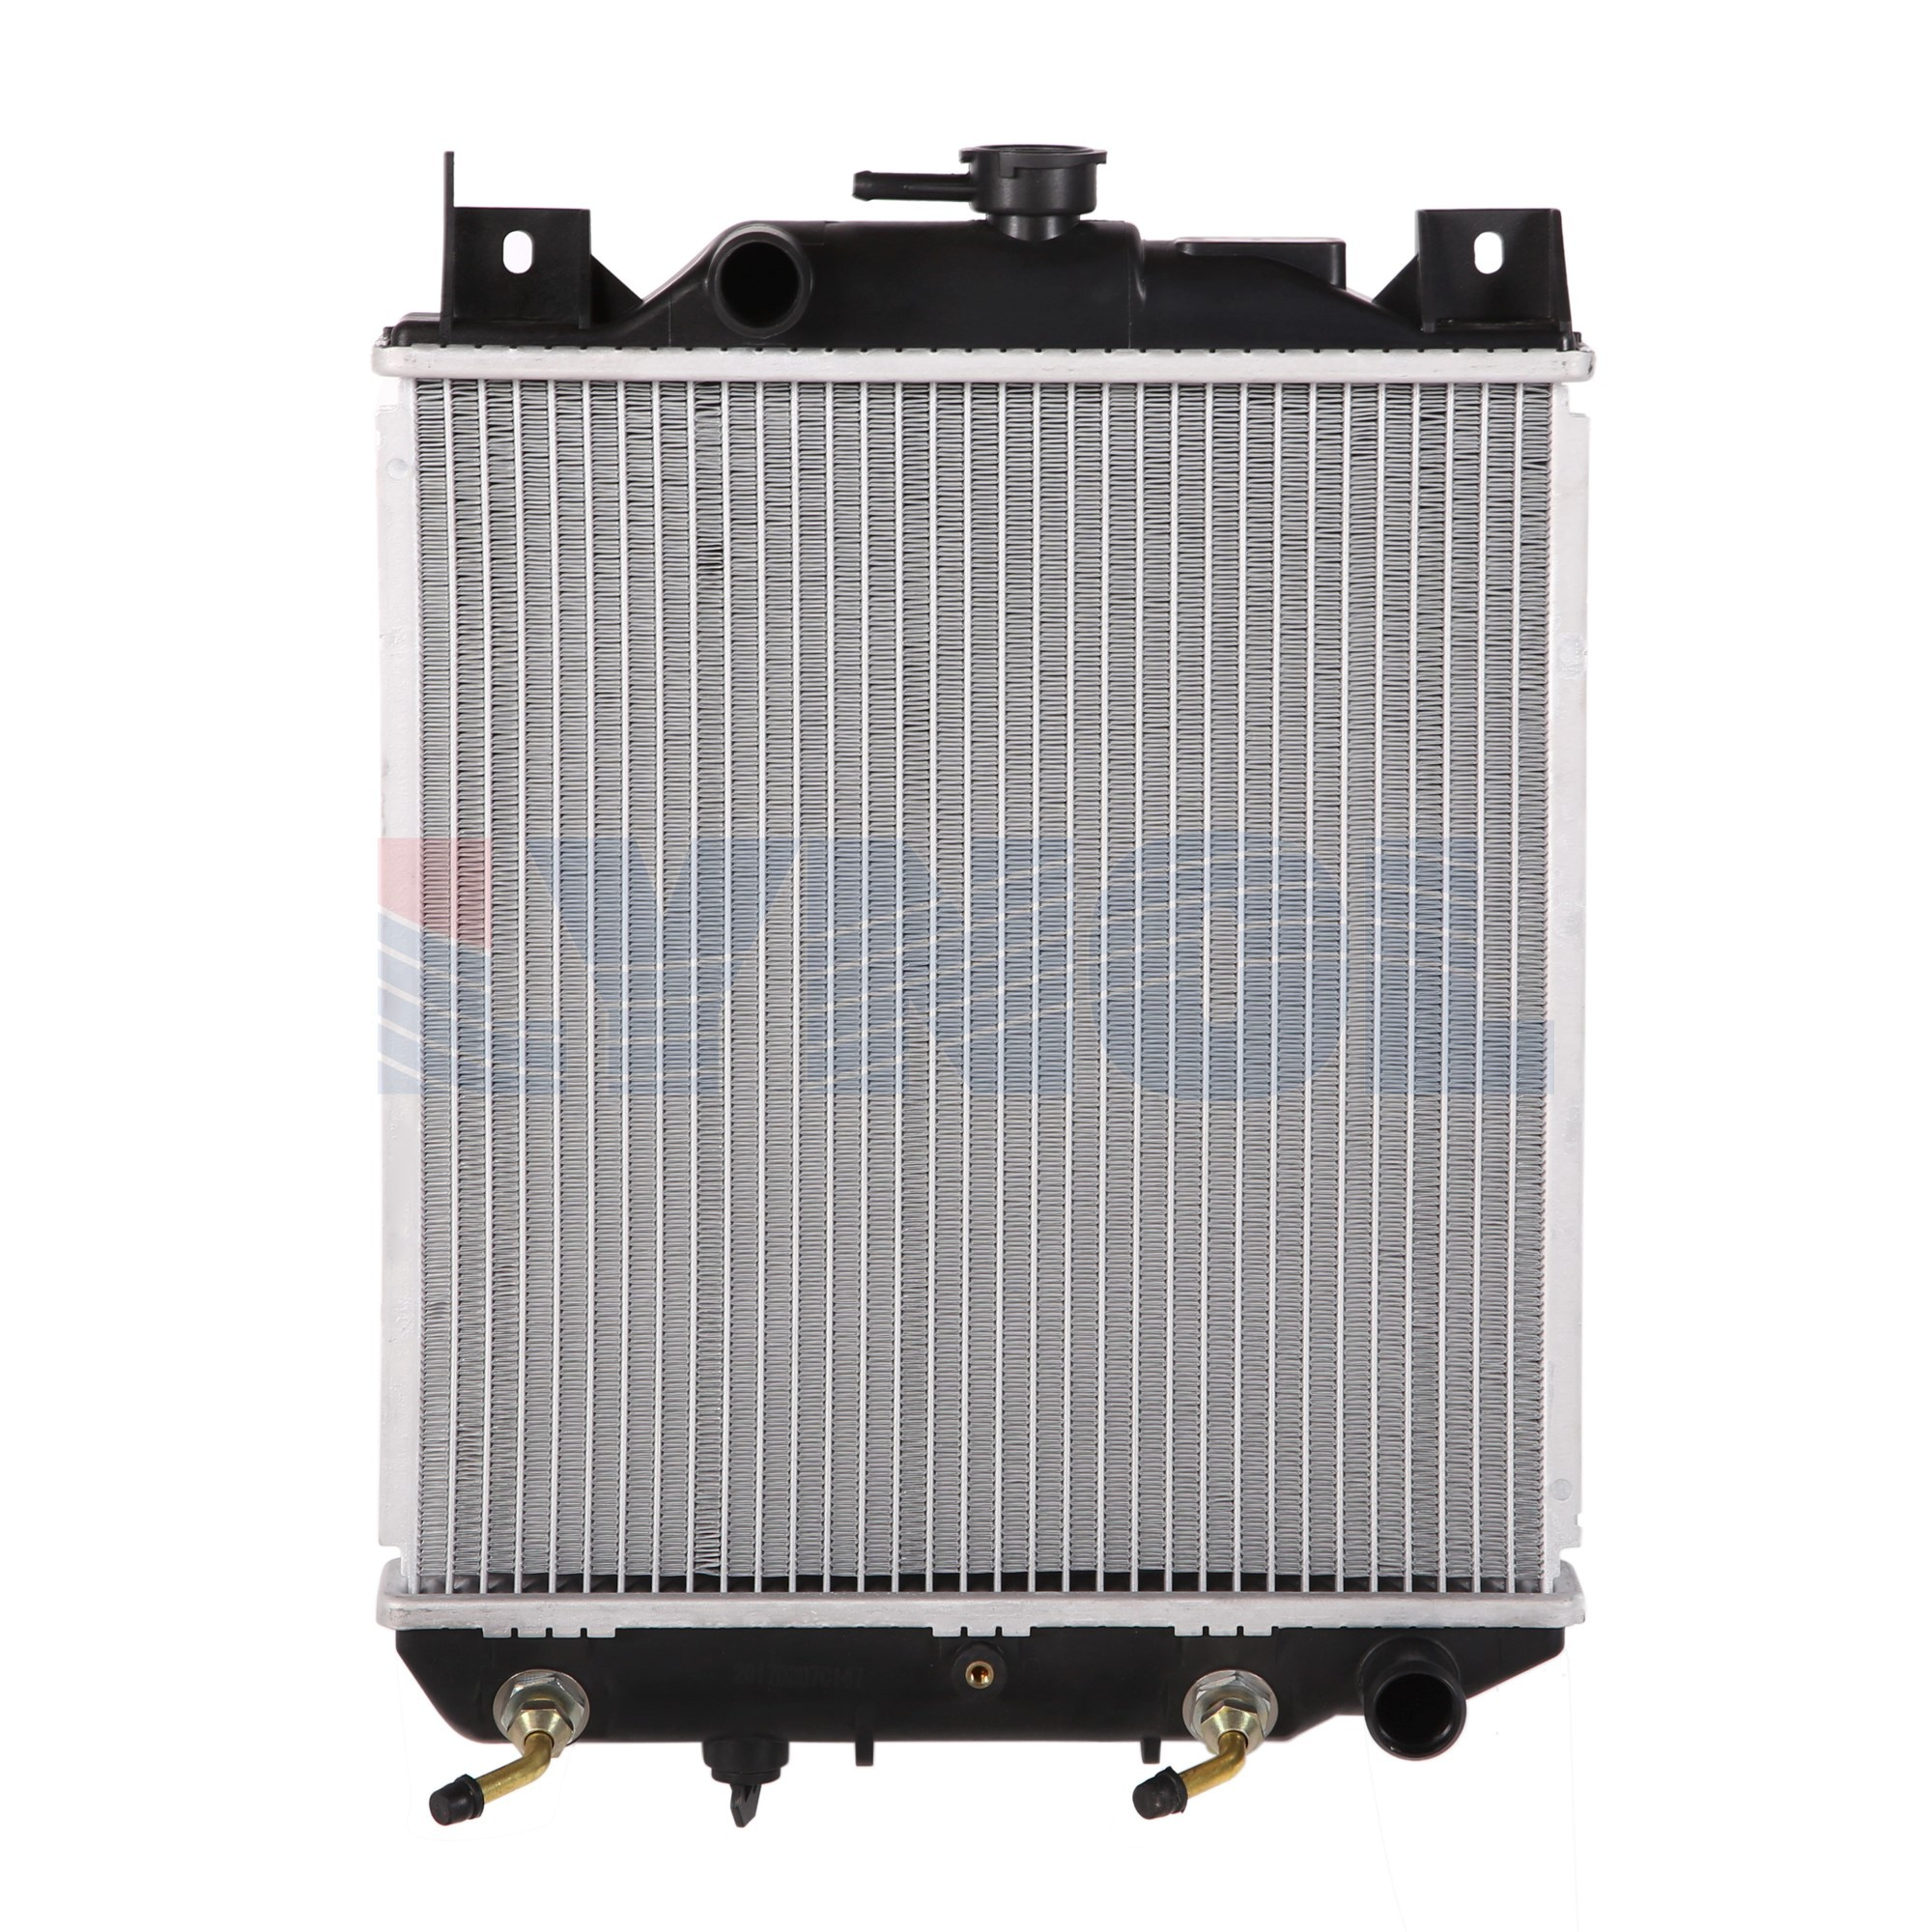 LR1168 - RADIATOR  - 90-94 Suzuki Swift, 1.0L l3 / 1.3L l4